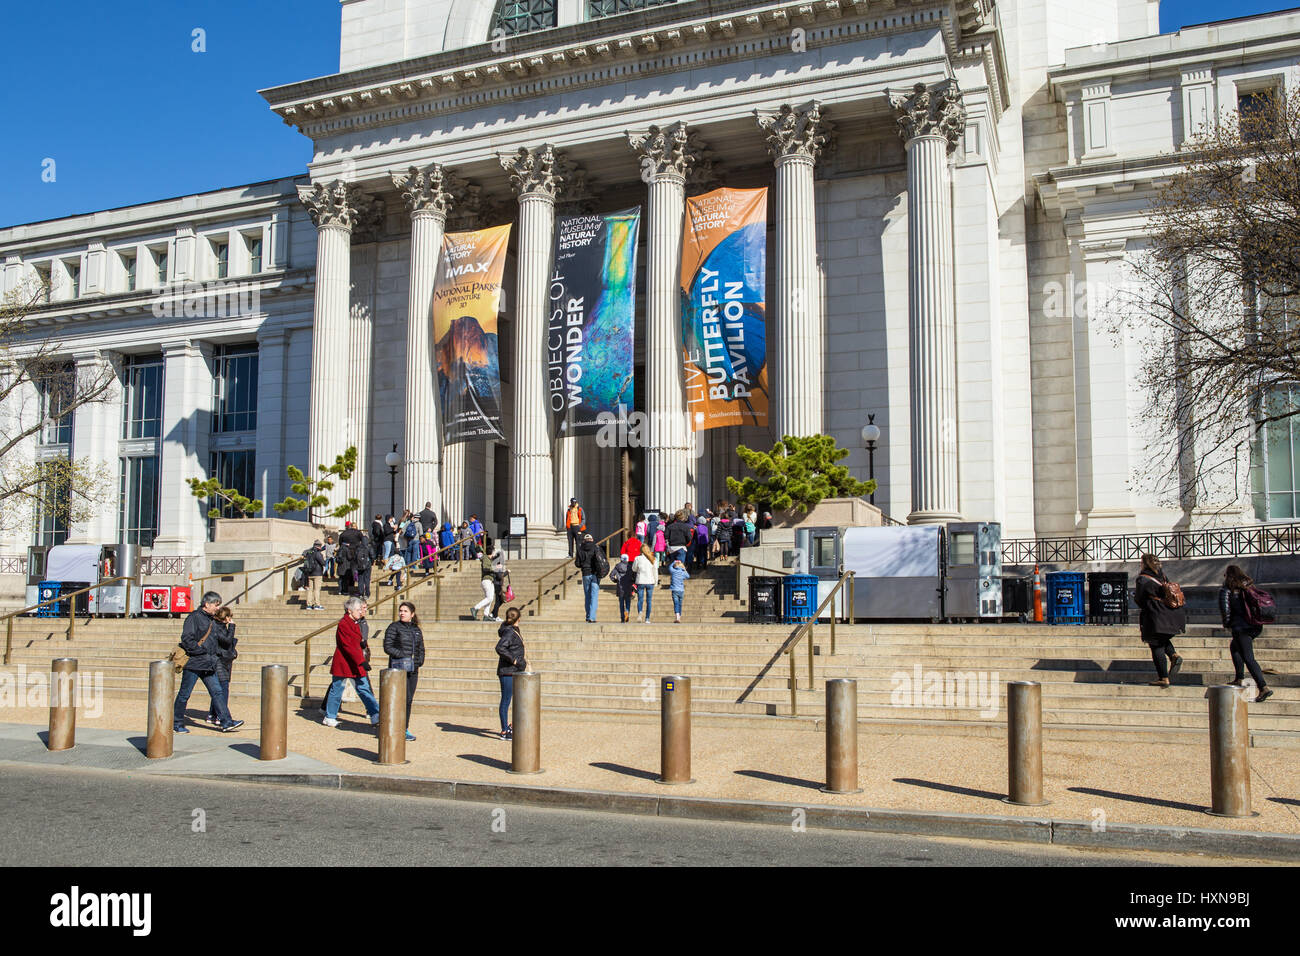 Tourists and visitors enter the Neo-classical National Museum of Natural History on the National Mall in Washington, - Stock Image